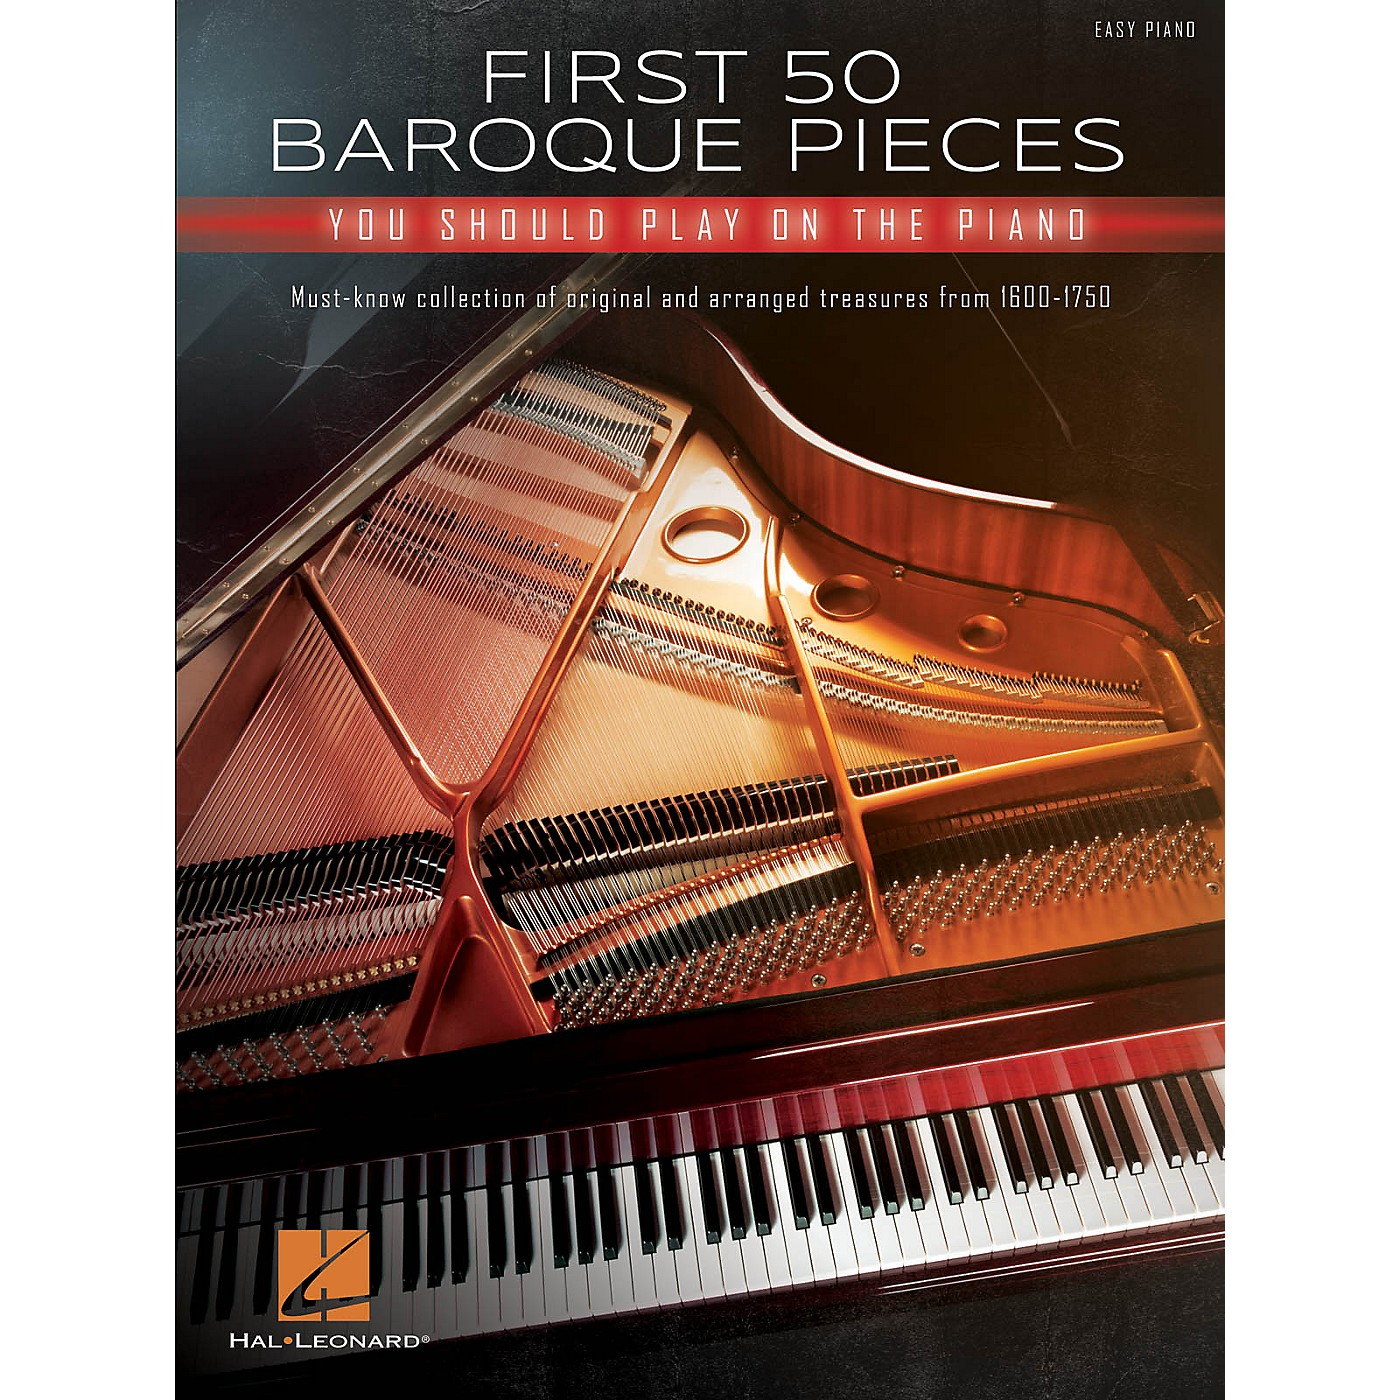 Hal Leonard First 50 Baroque Pieces You Should Play on Piano - Easy Piano Songbook thumbnail